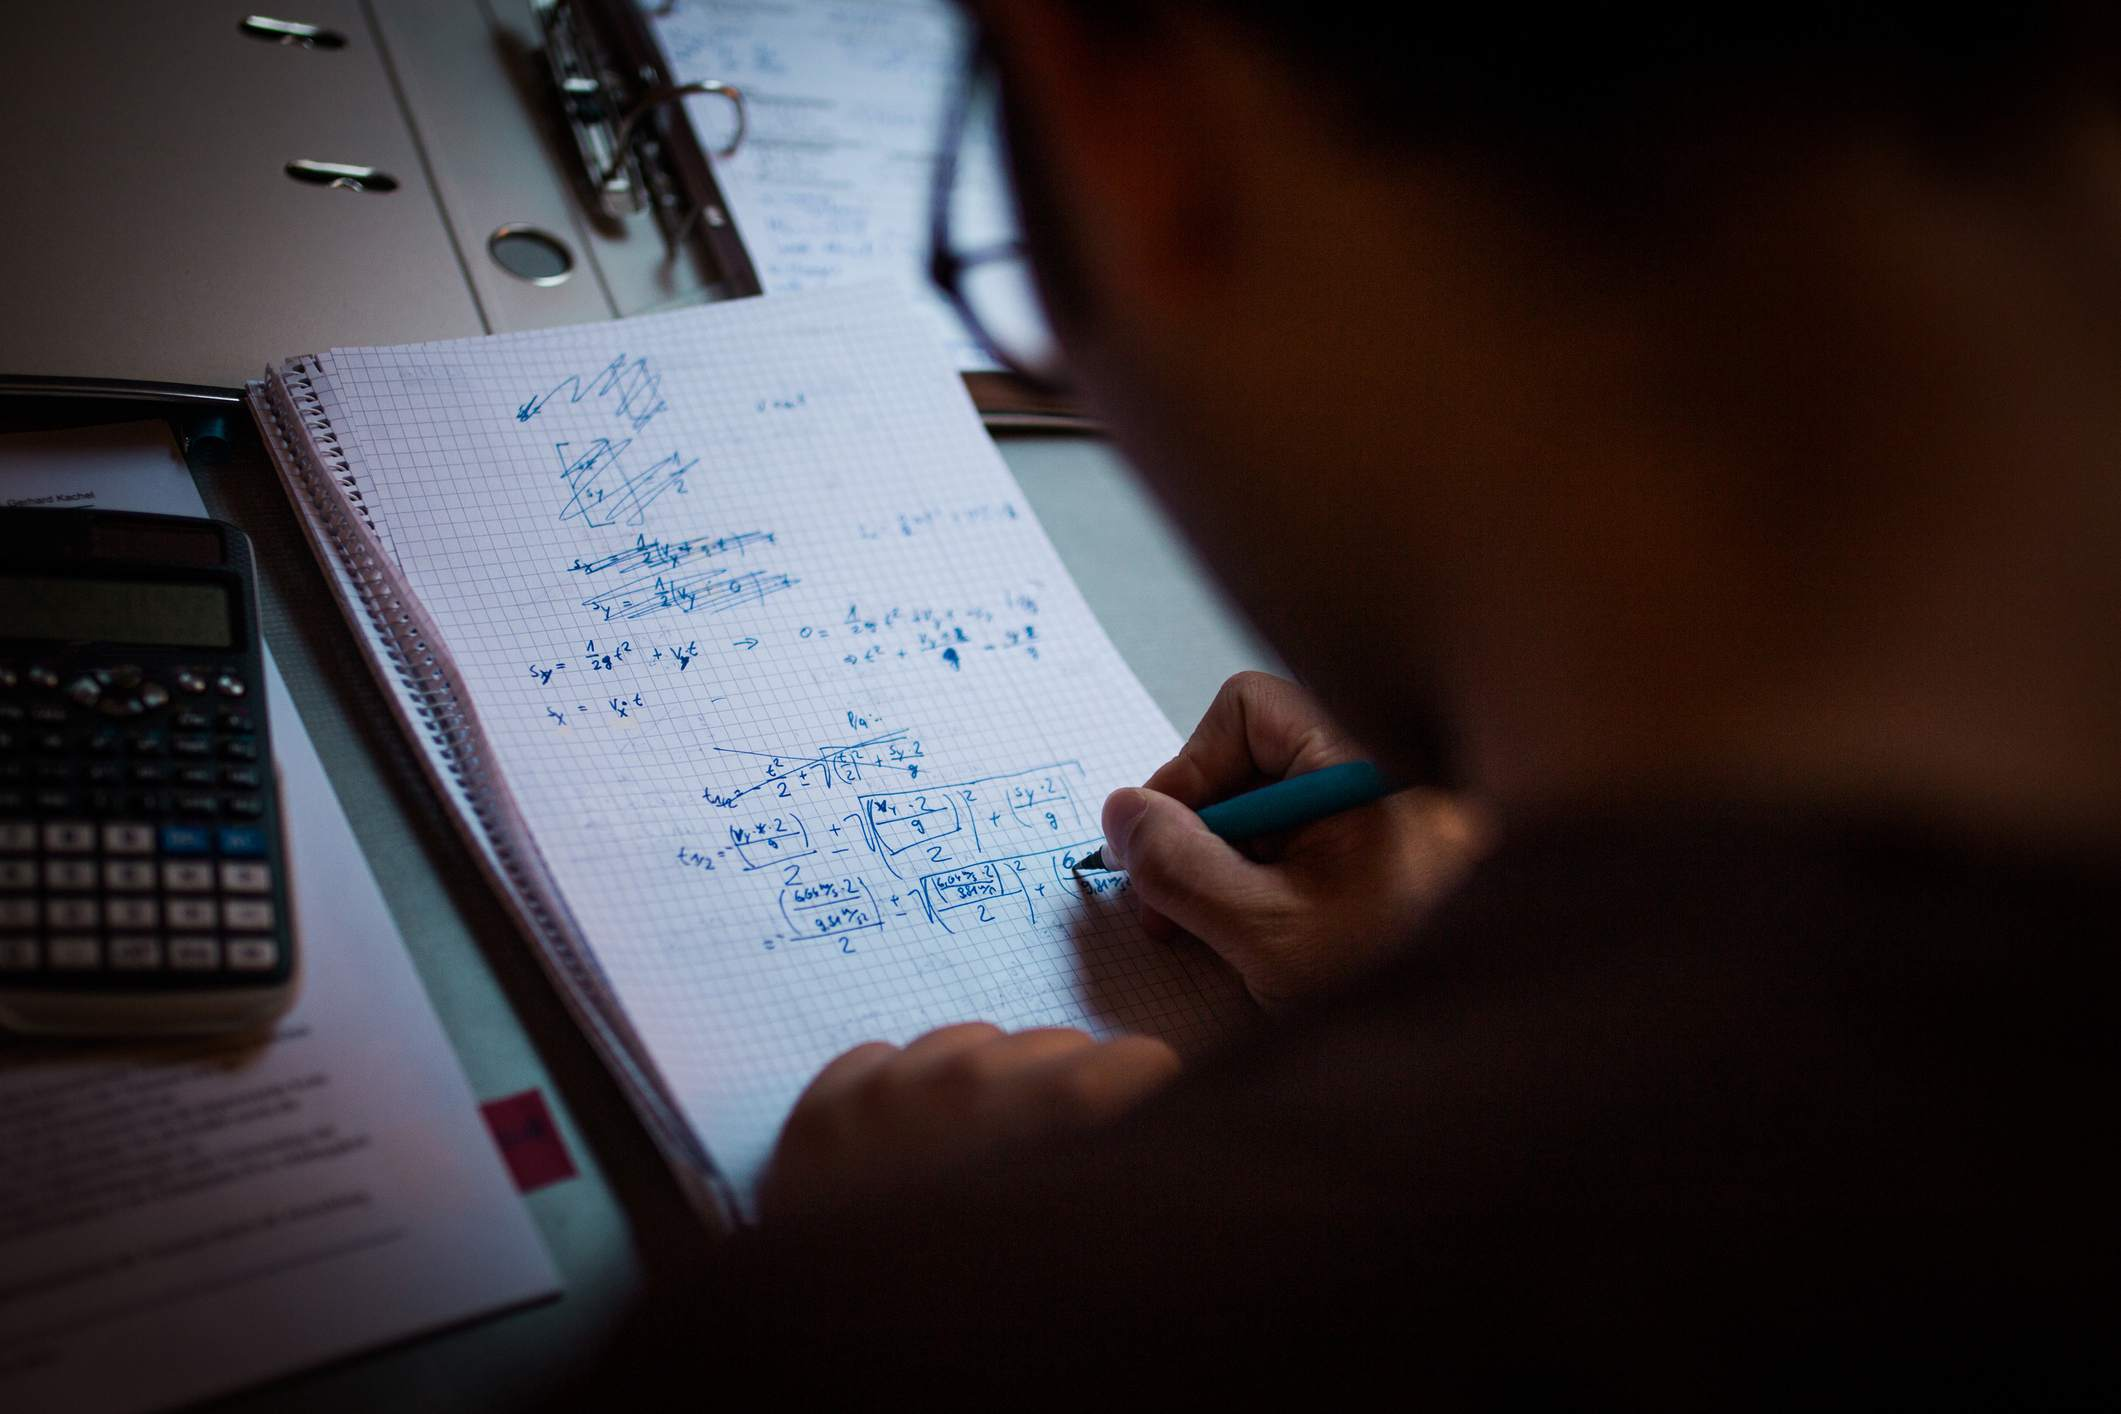 Young Man learning Math and Physics